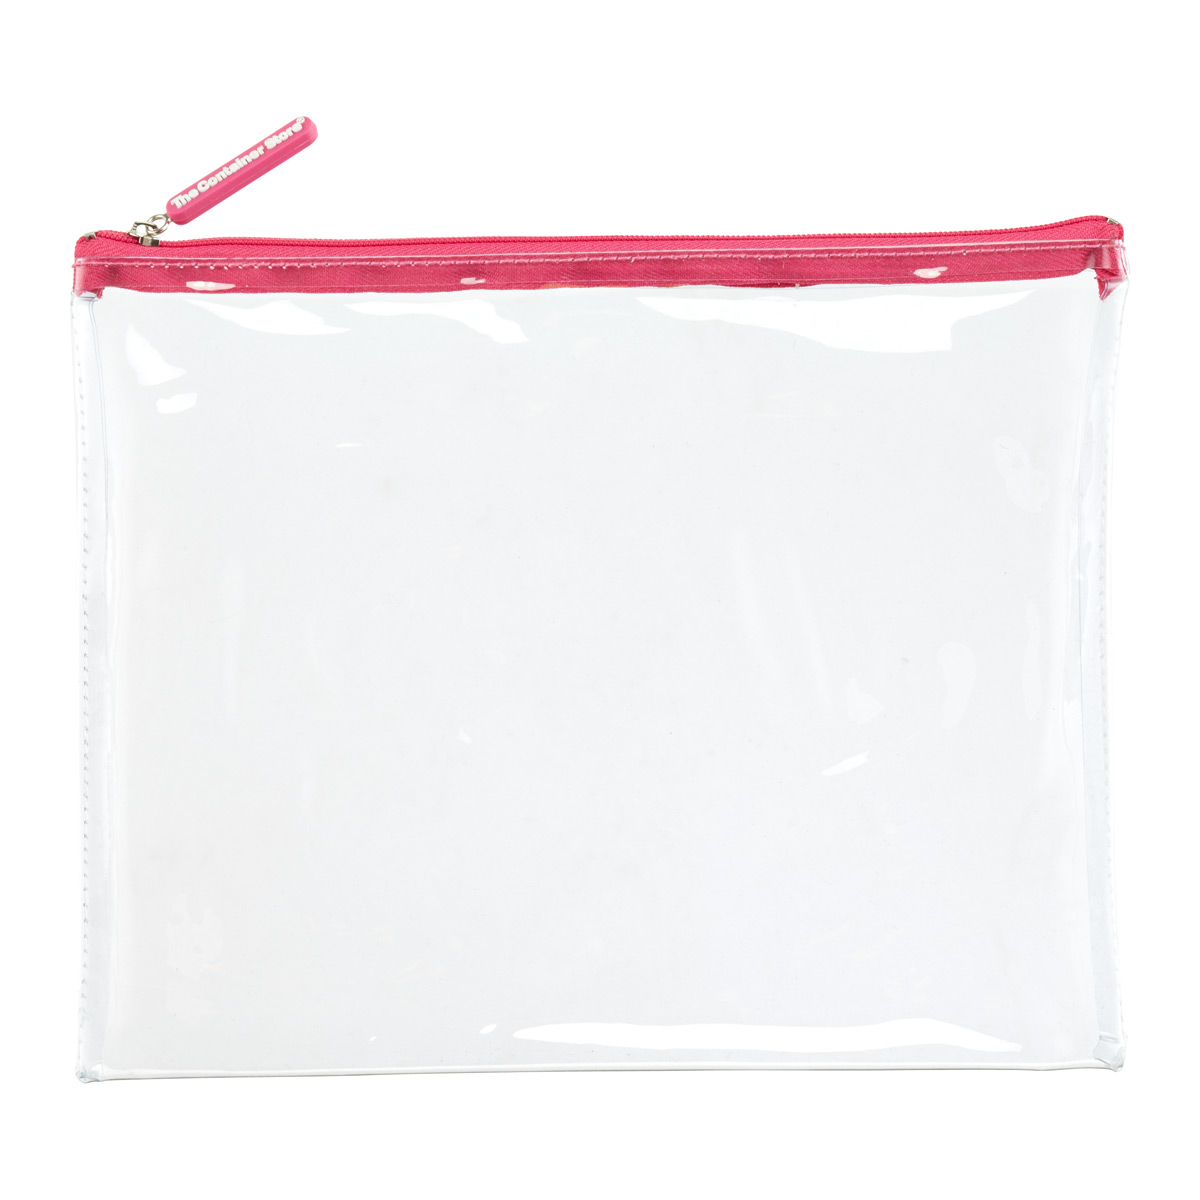 Large Medium Pink Zippered Clear Pouch